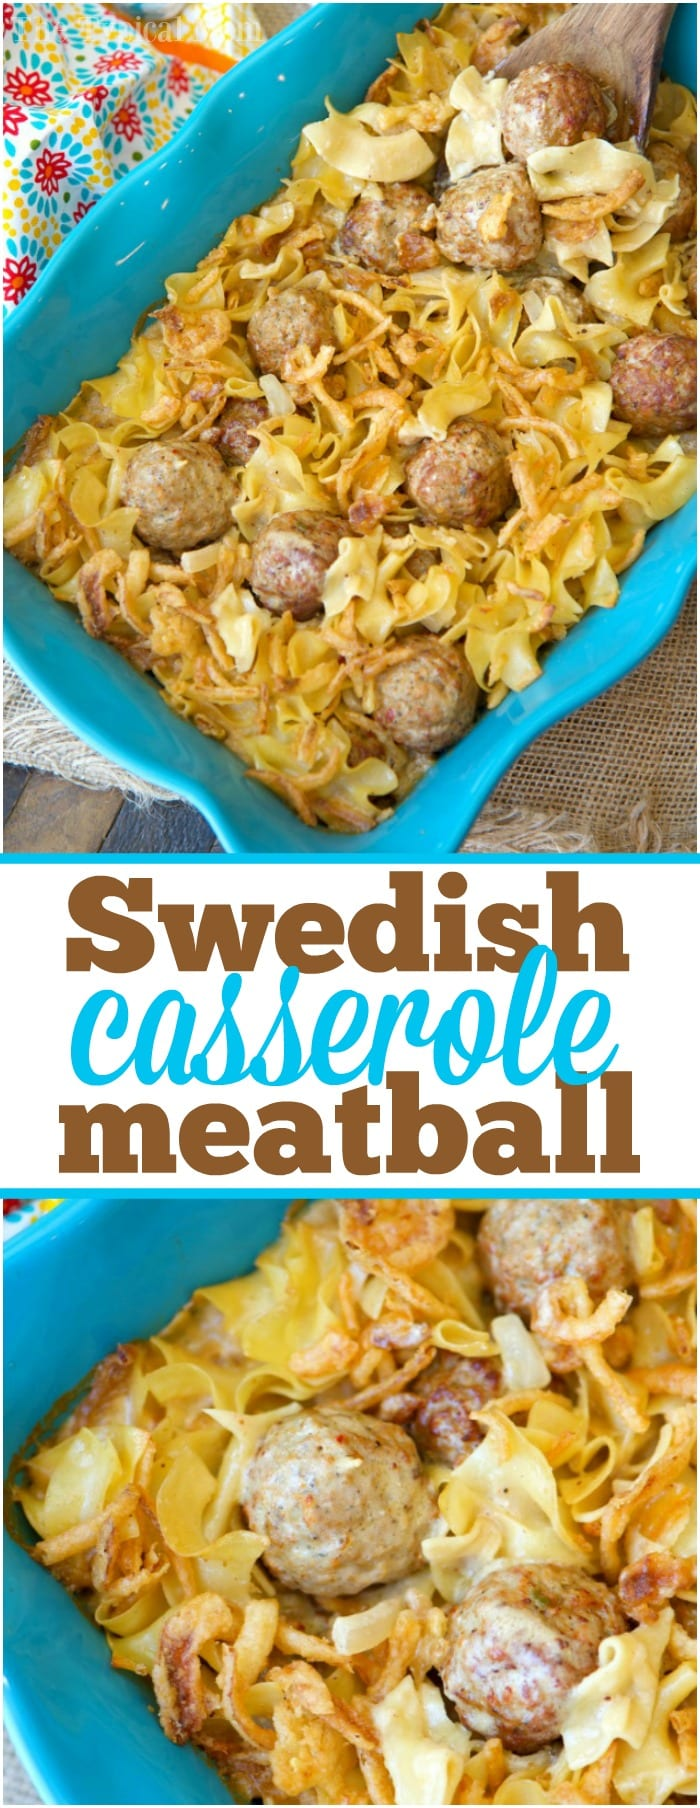 This easy Swedish meatball casserole recipe will bring you back to your childhood but is much easier and quicker to make than you may imagine! This creamy comfort food is topped with the crispy onions you love and will definitely make you want seconds. If you love Swedish meatballs you'll love this twist. #swedish #meatballs #casserole #easy #homemade